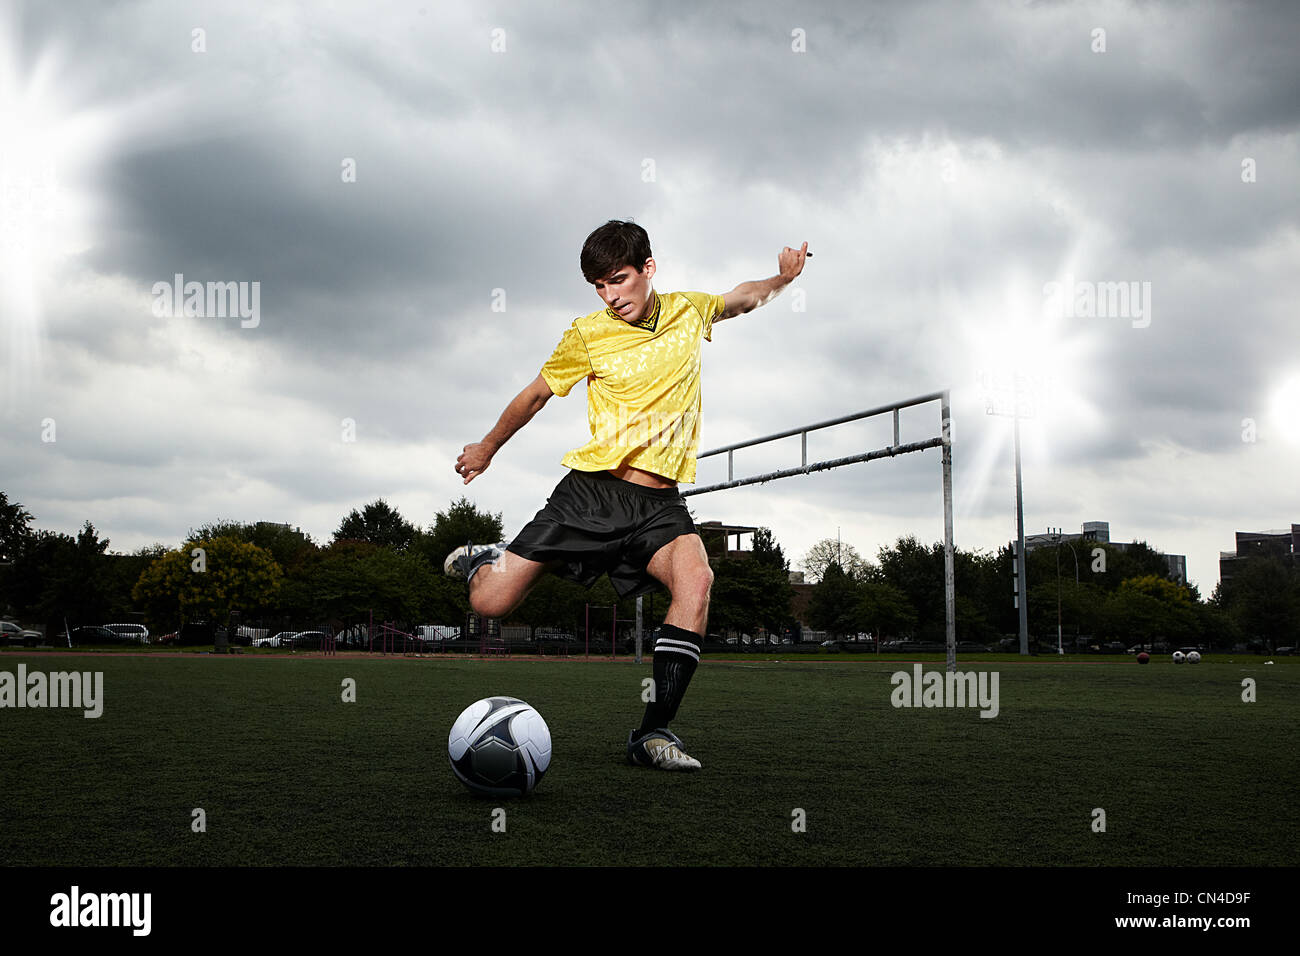 Soccer player about to kick ball on pitch - Stock Image